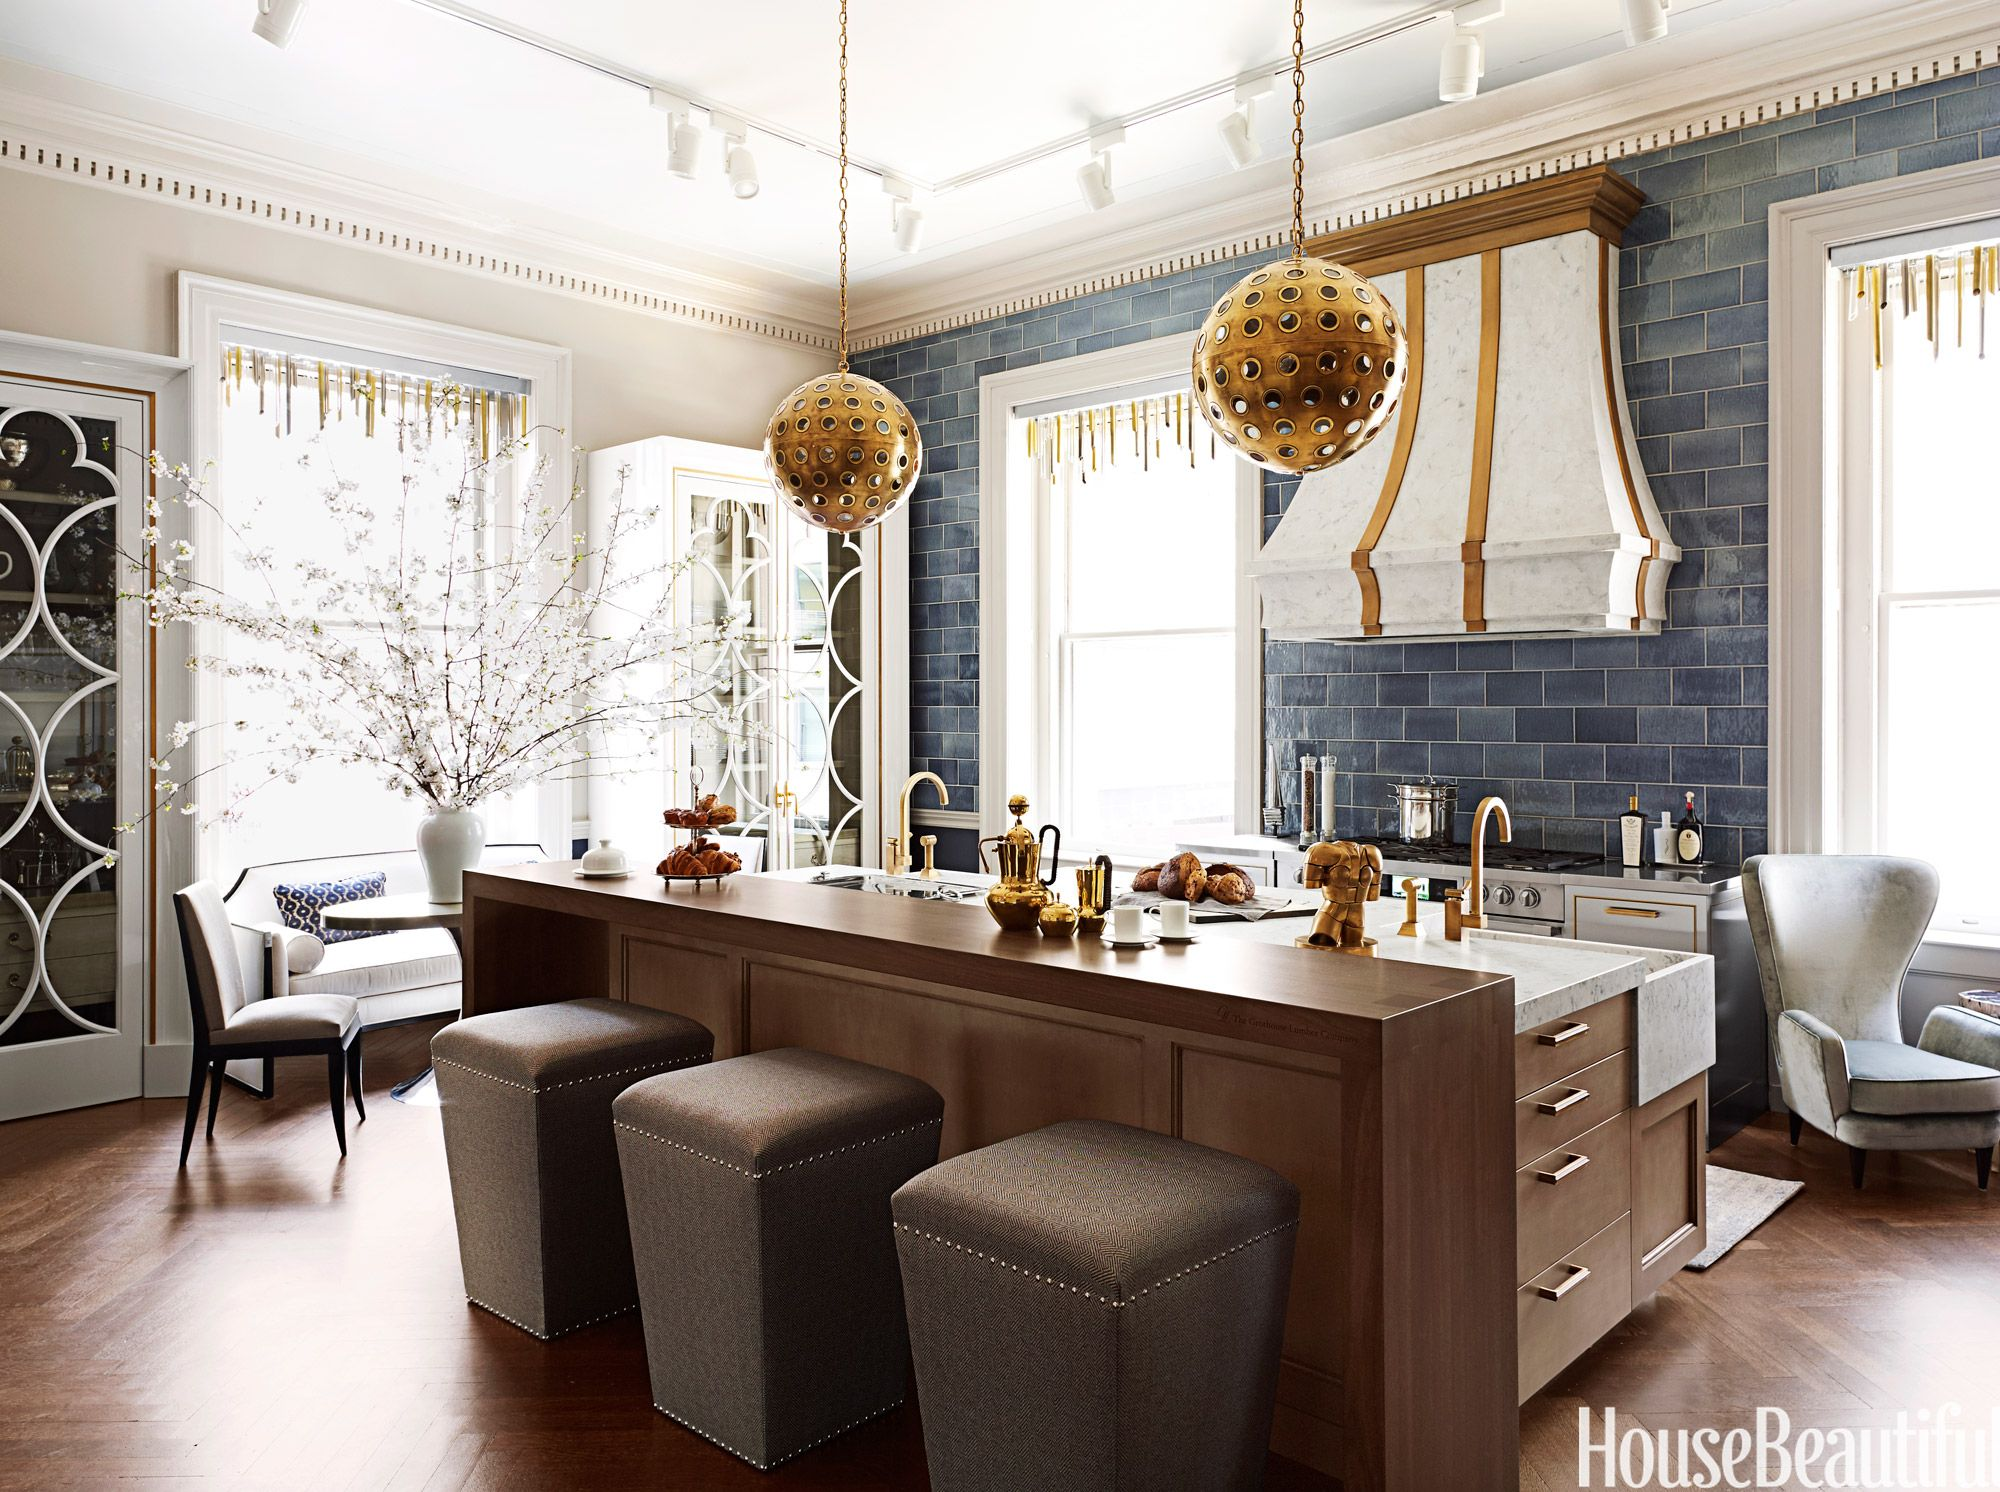 150 Kitchen Design & Remodeling Ideas of Beautiful